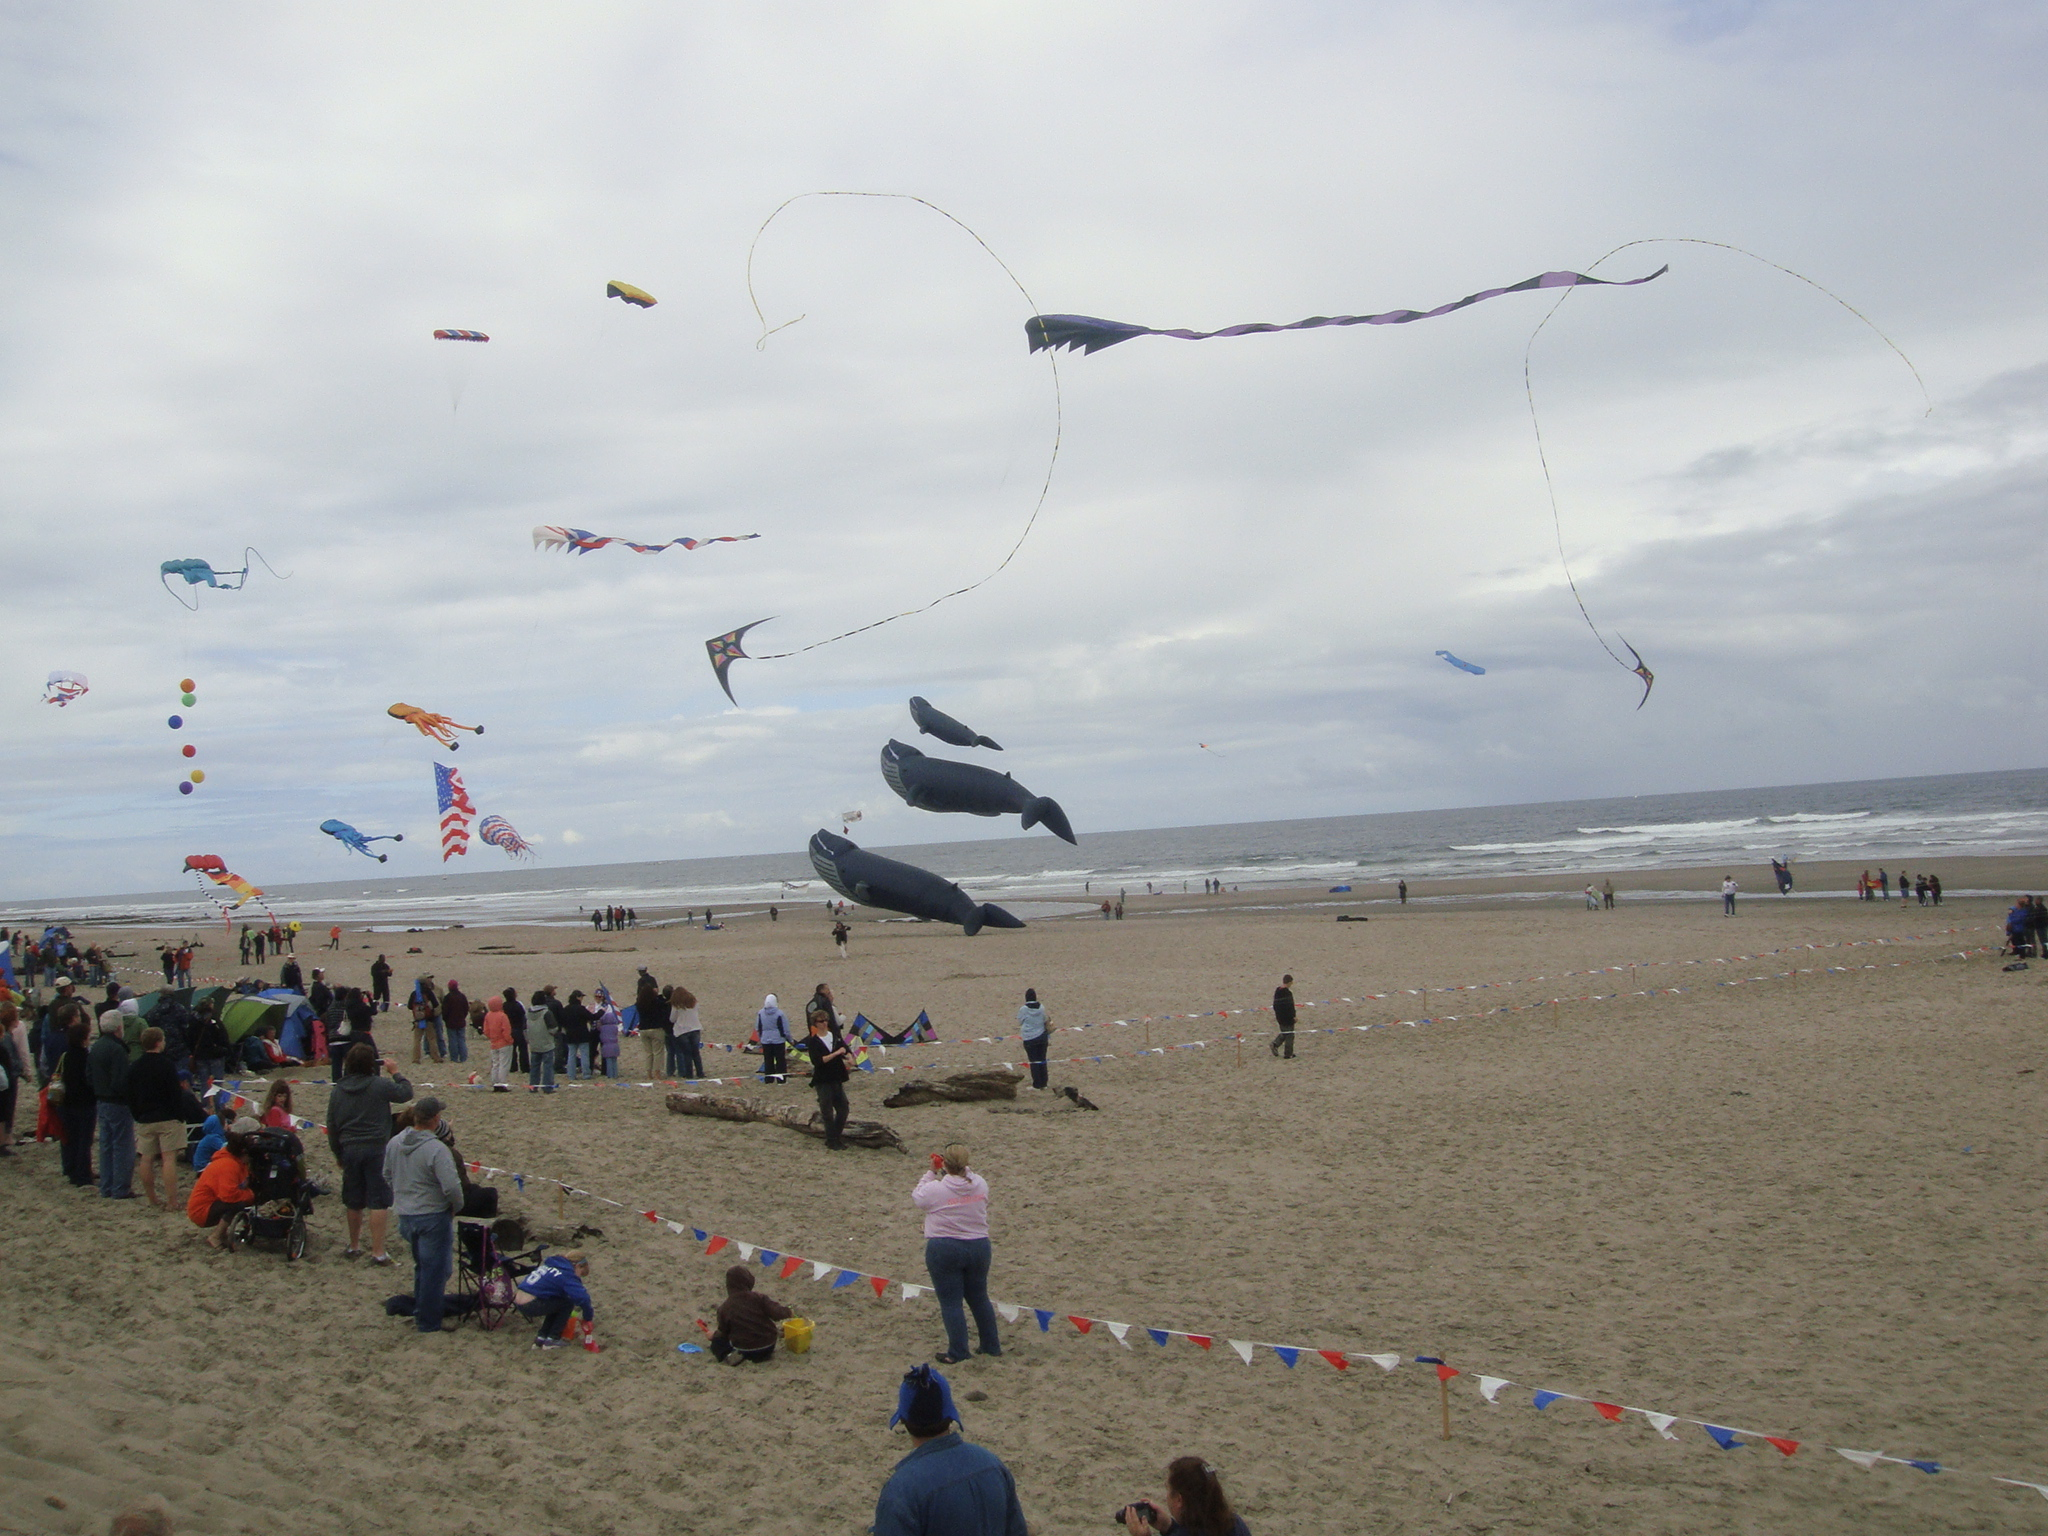 Kites in the Air